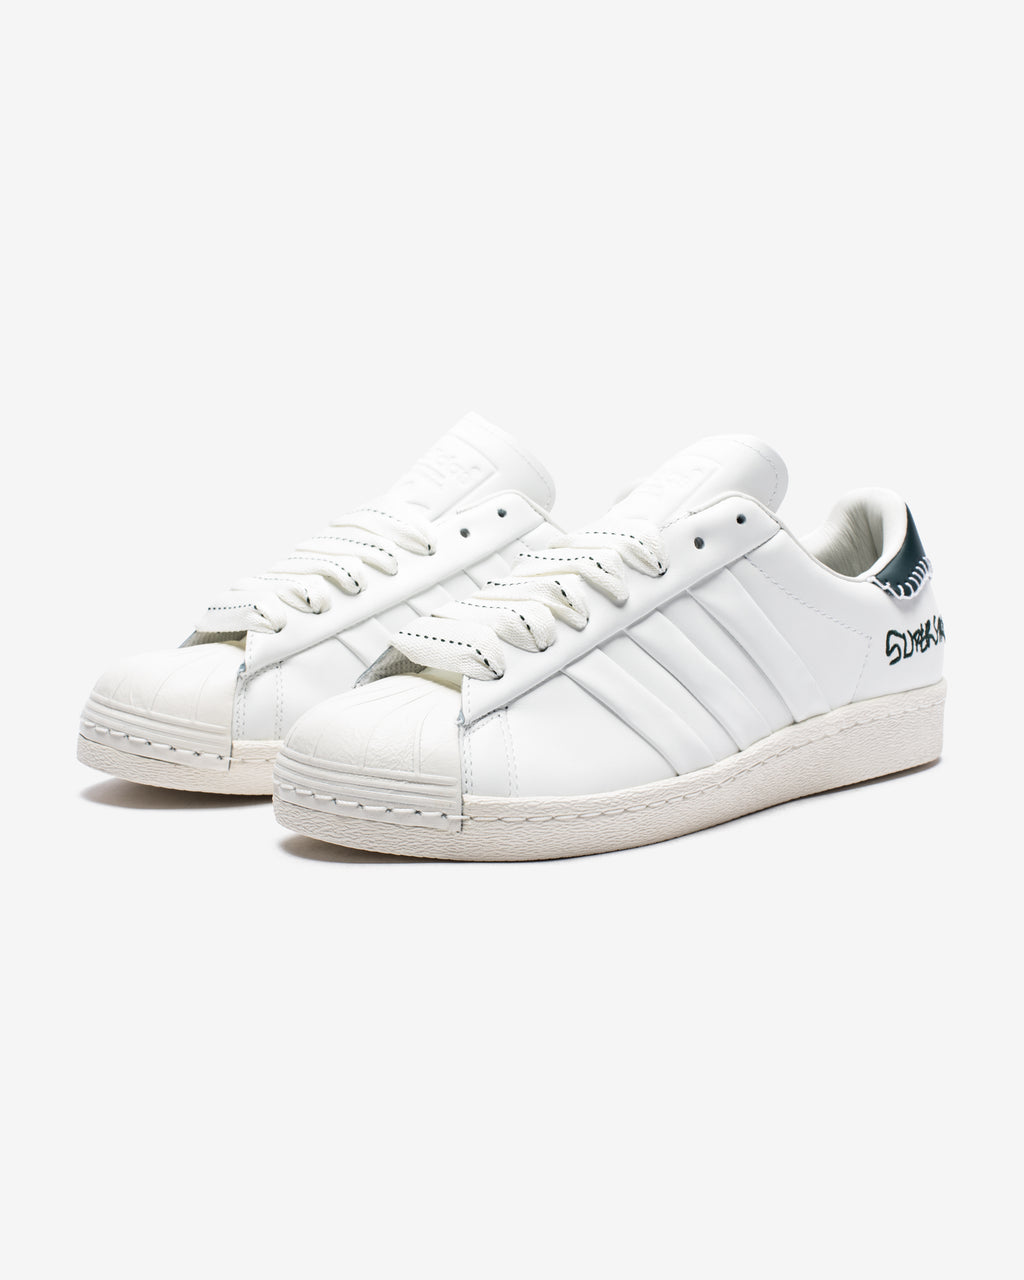 ADIDAS X JONAH HILL SUPERSTAR - WHITE